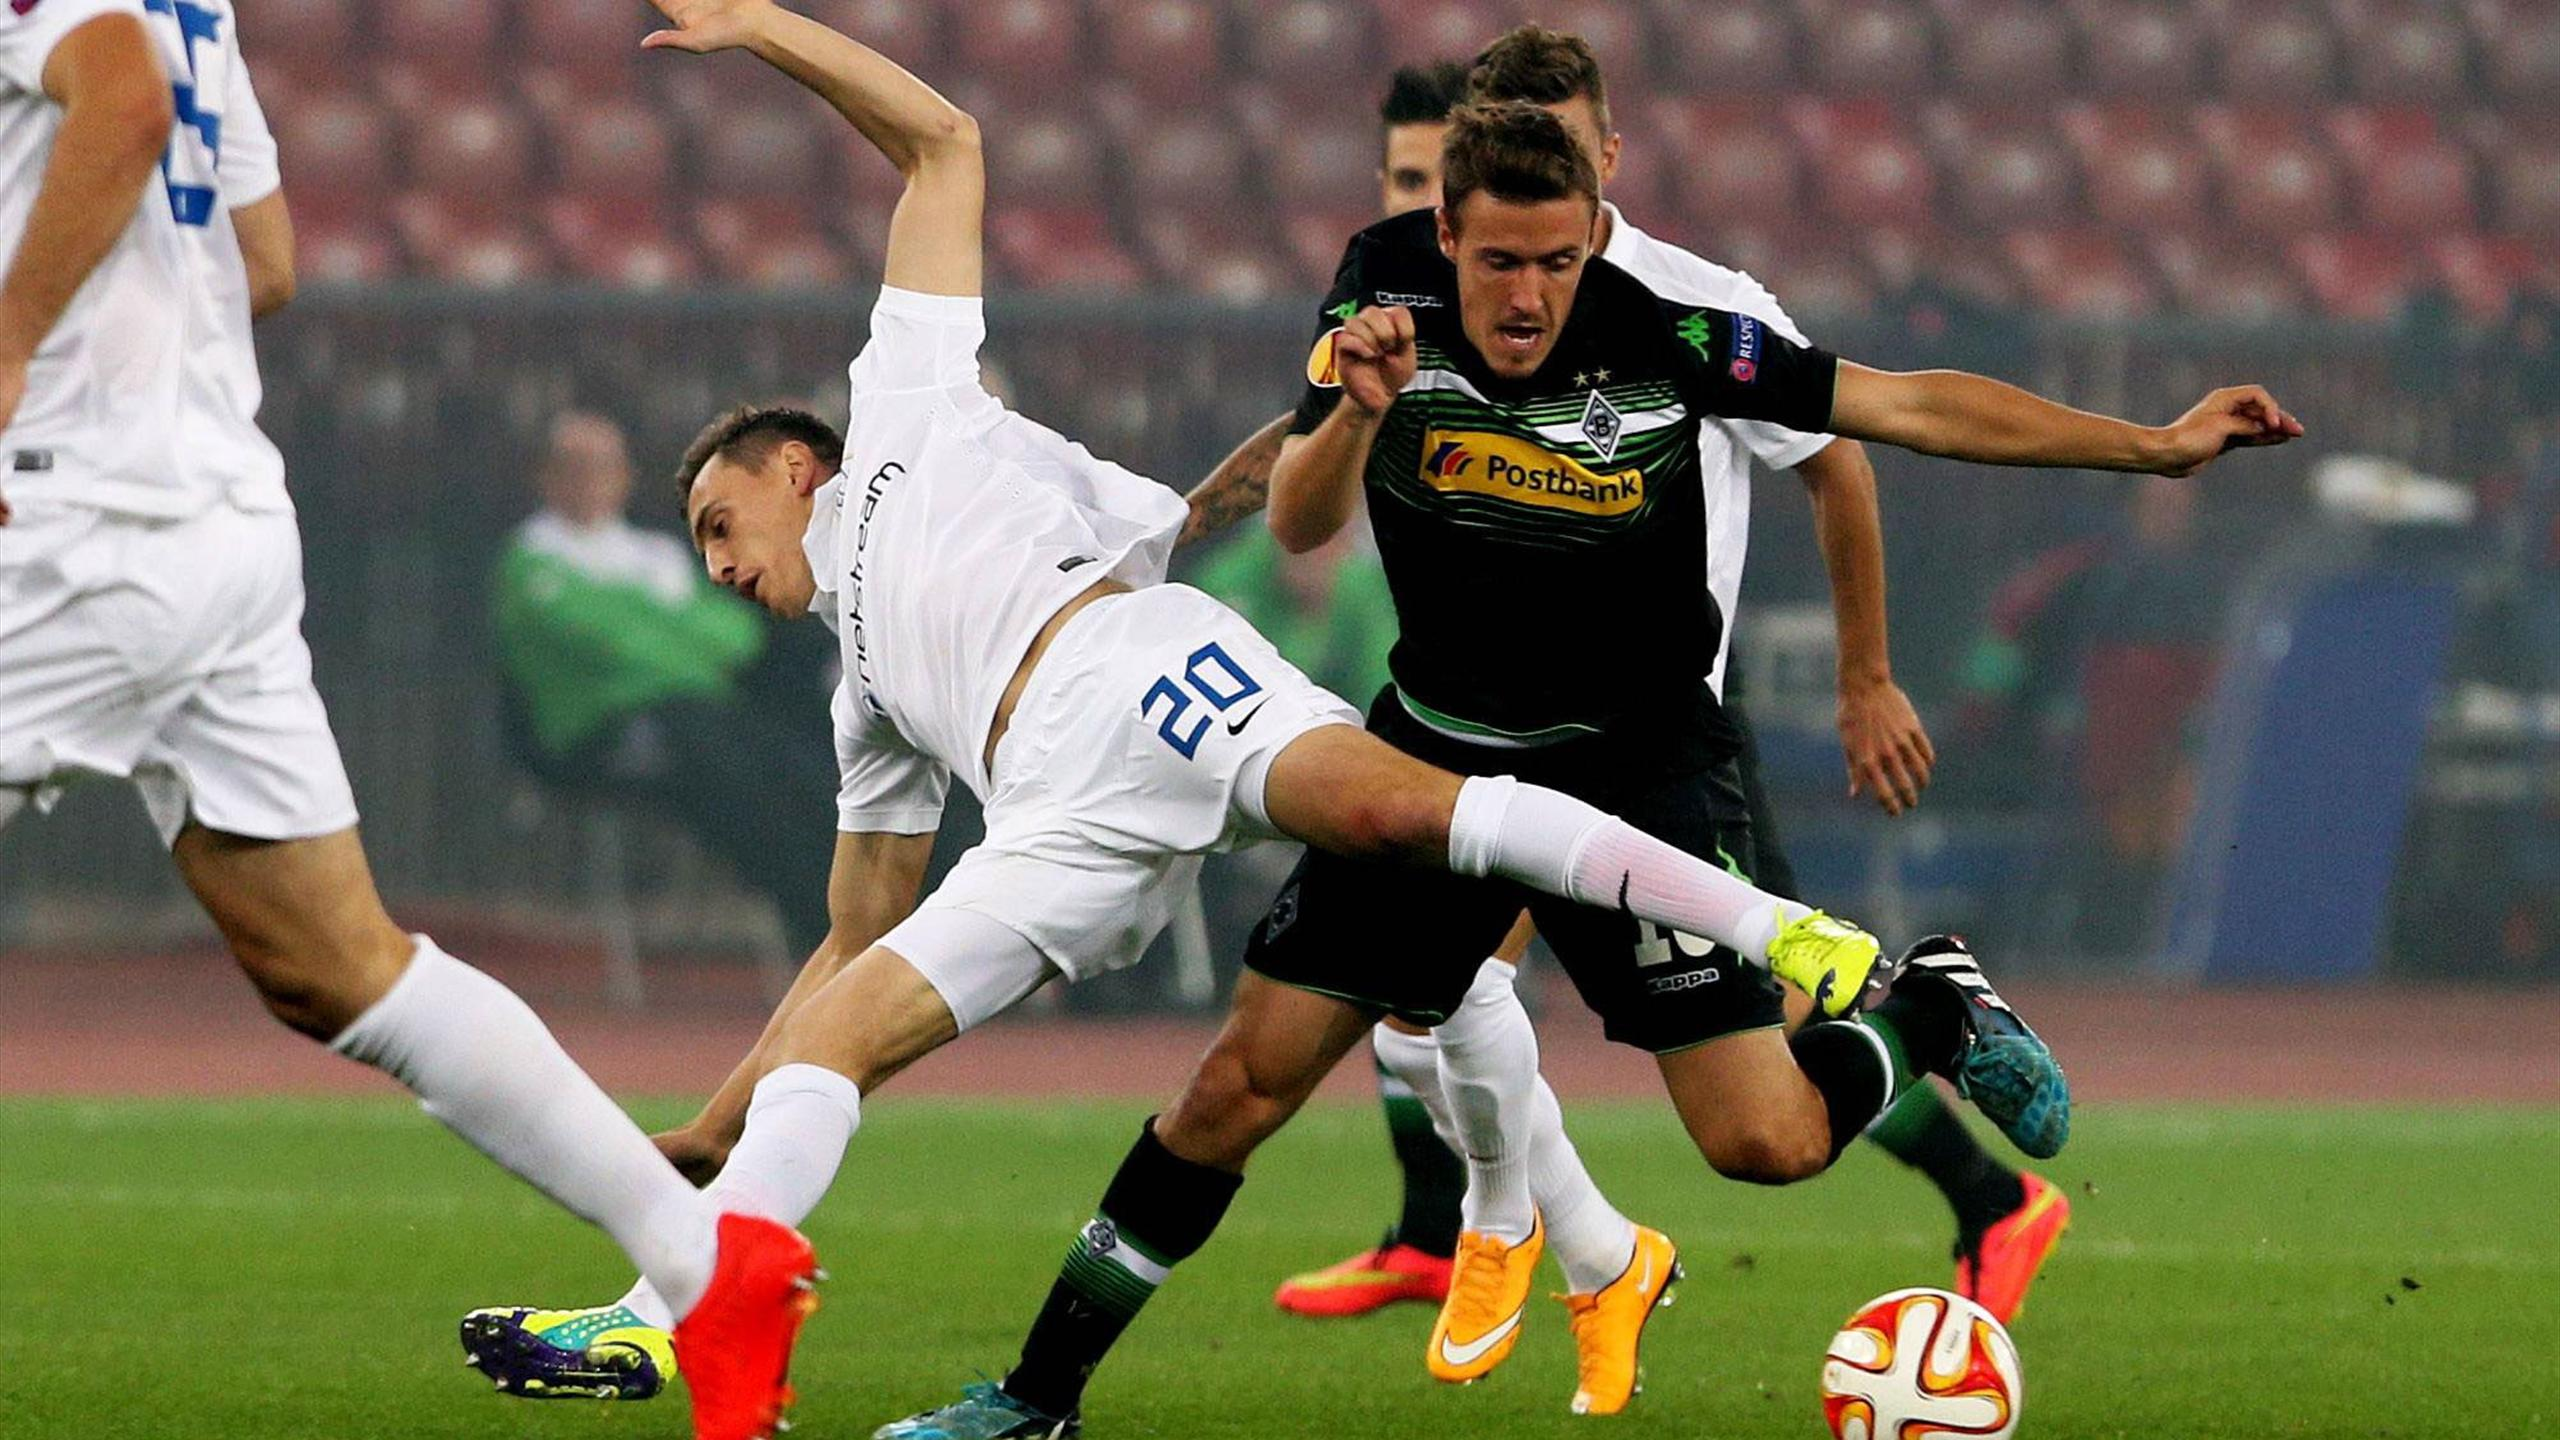 Video: Zurich vs Borussia M gladbach